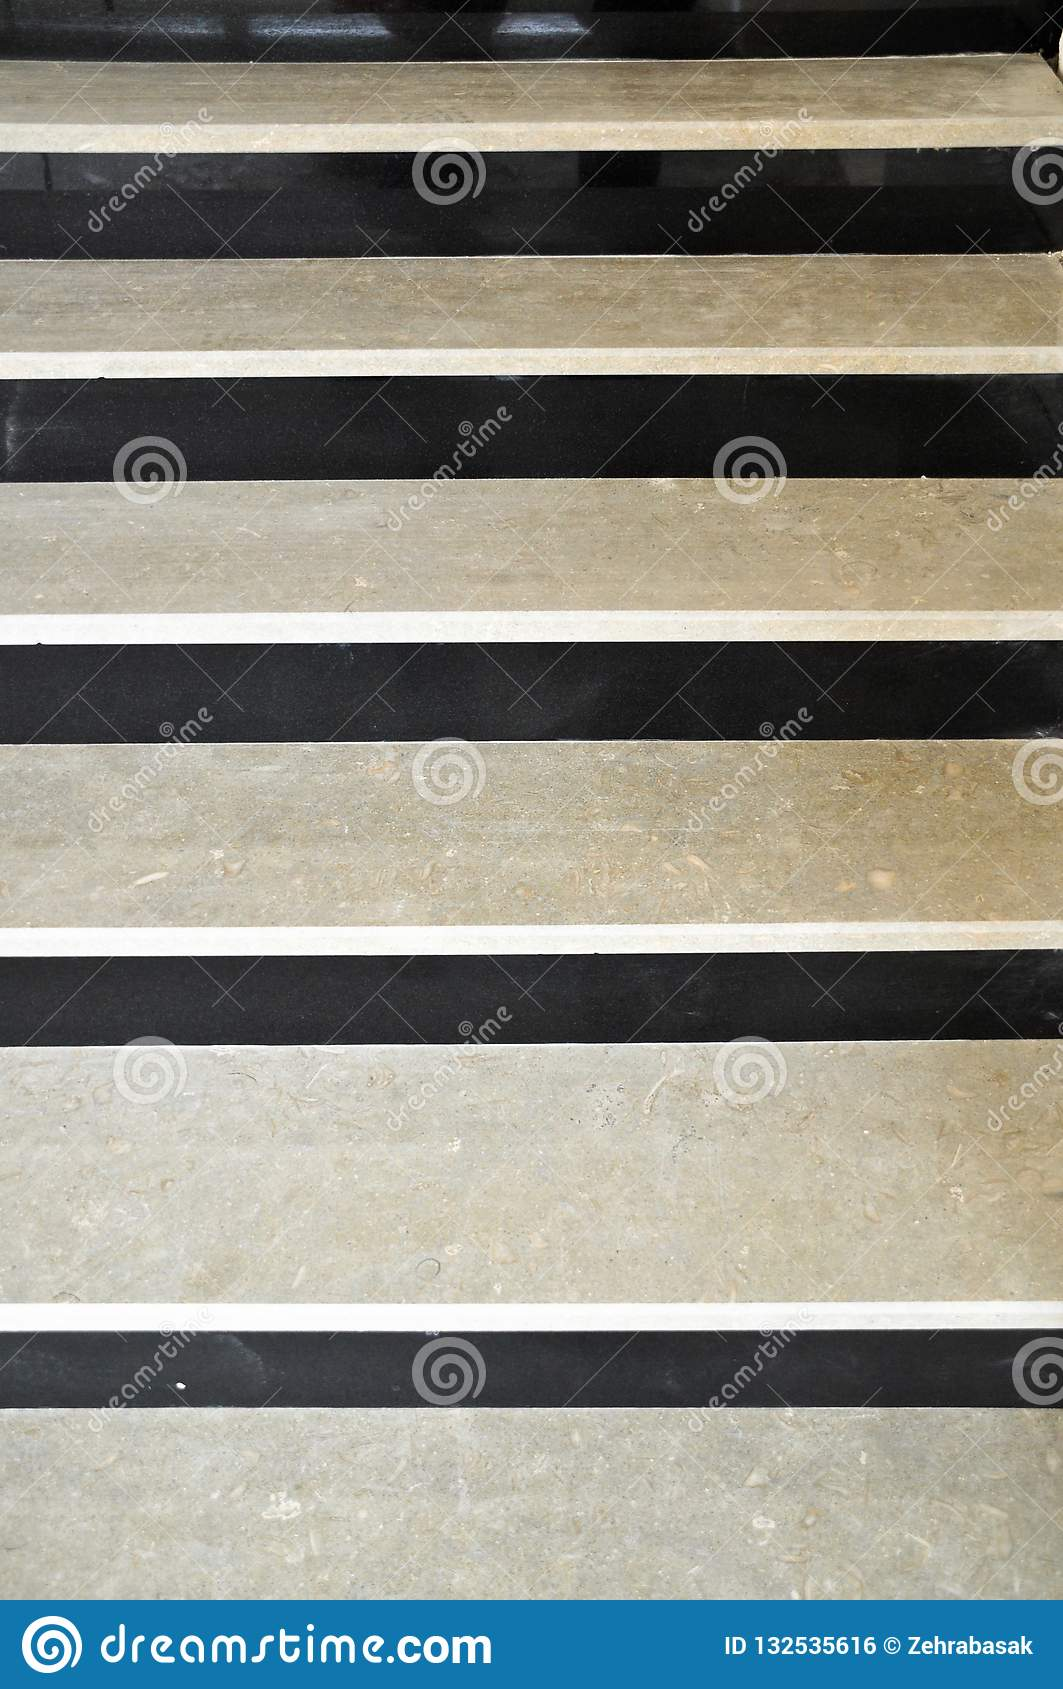 Black And White Marble Stairs Stock Photo Image Of Hall Blank 132535616